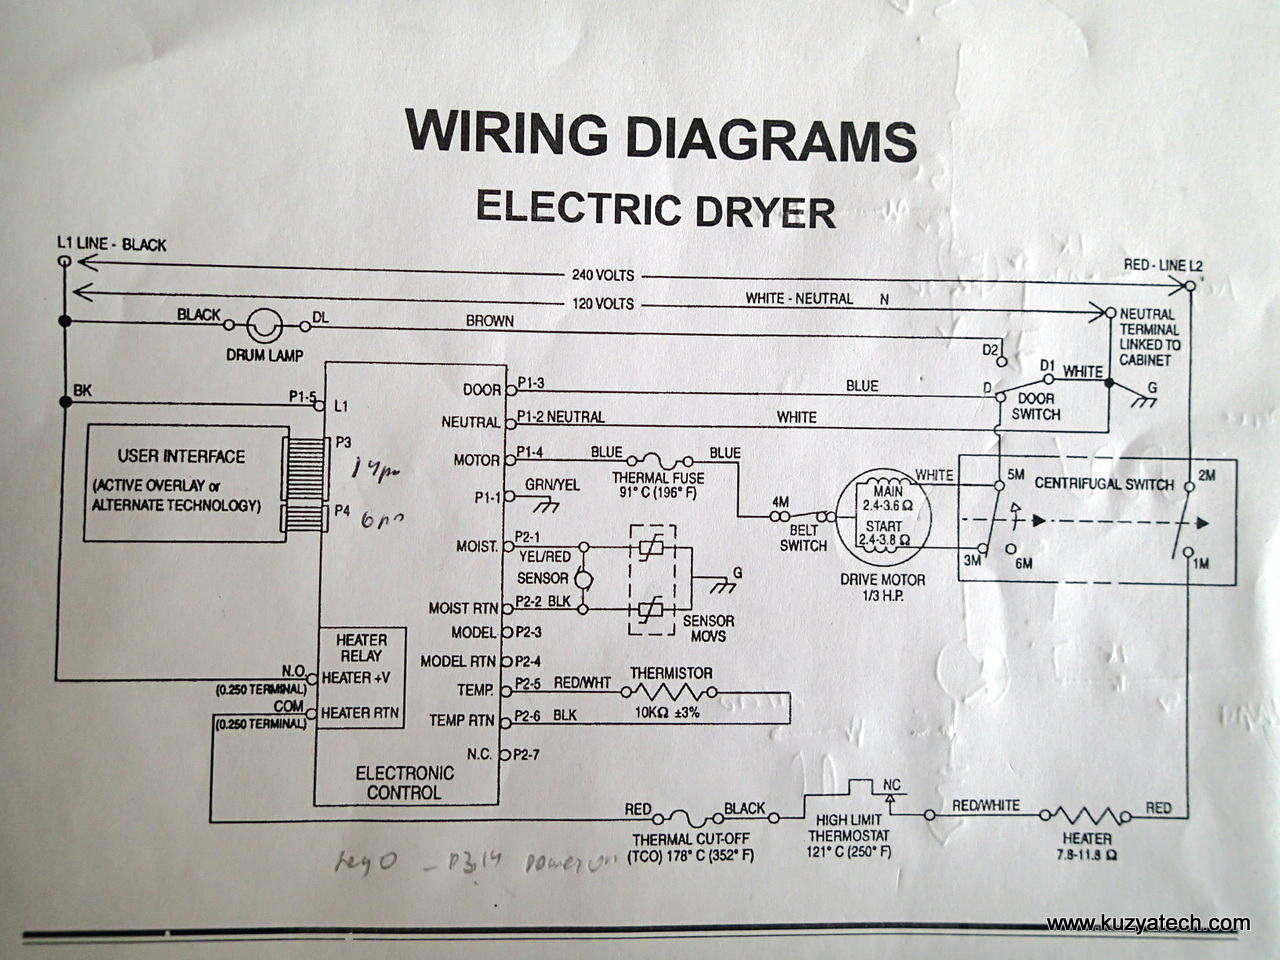 wiring diagram for a whirlpool dryer the wiring diagram whirlpool duet dryer electric diagram nodasystech wiring diagram